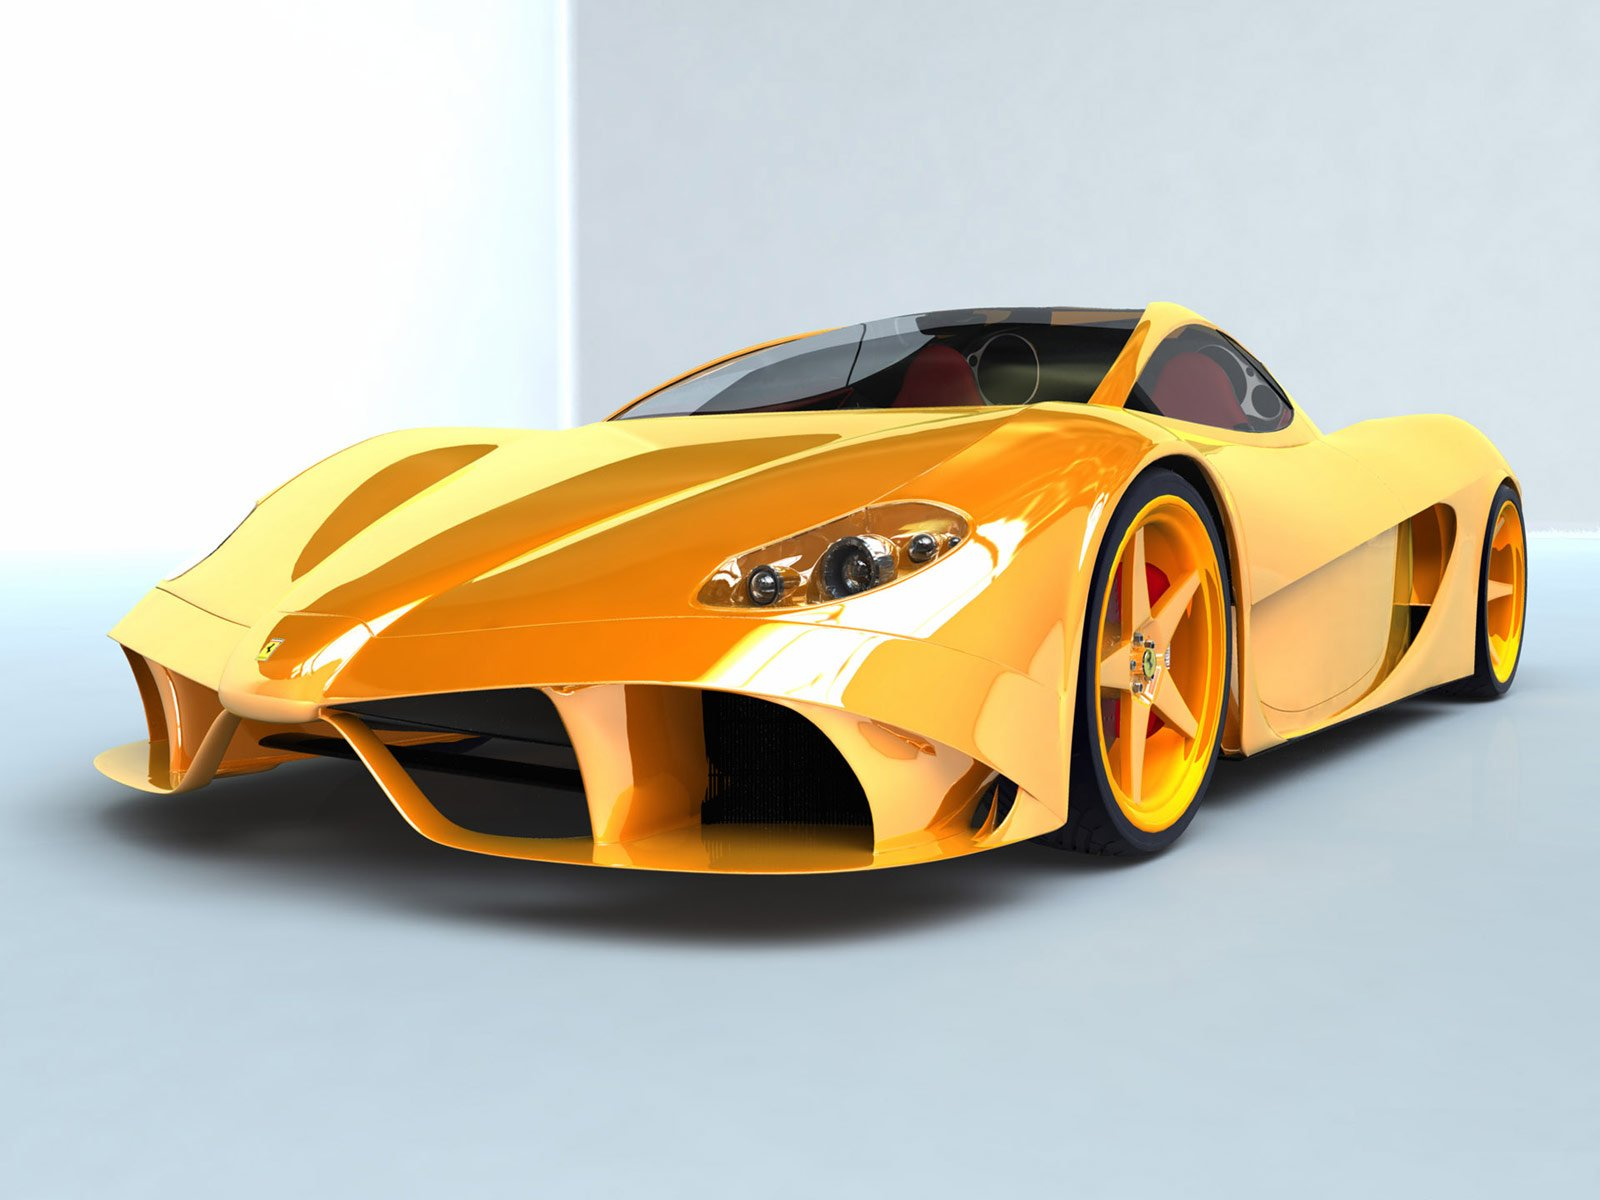 http://2.bp.blogspot.com/-lZz3J_qwDB4/TlXdl929-_I/AAAAAAAACWs/_JXBf9dhkUk/s1600/Latest+-Cars+-Wallpapers-sports.jpg